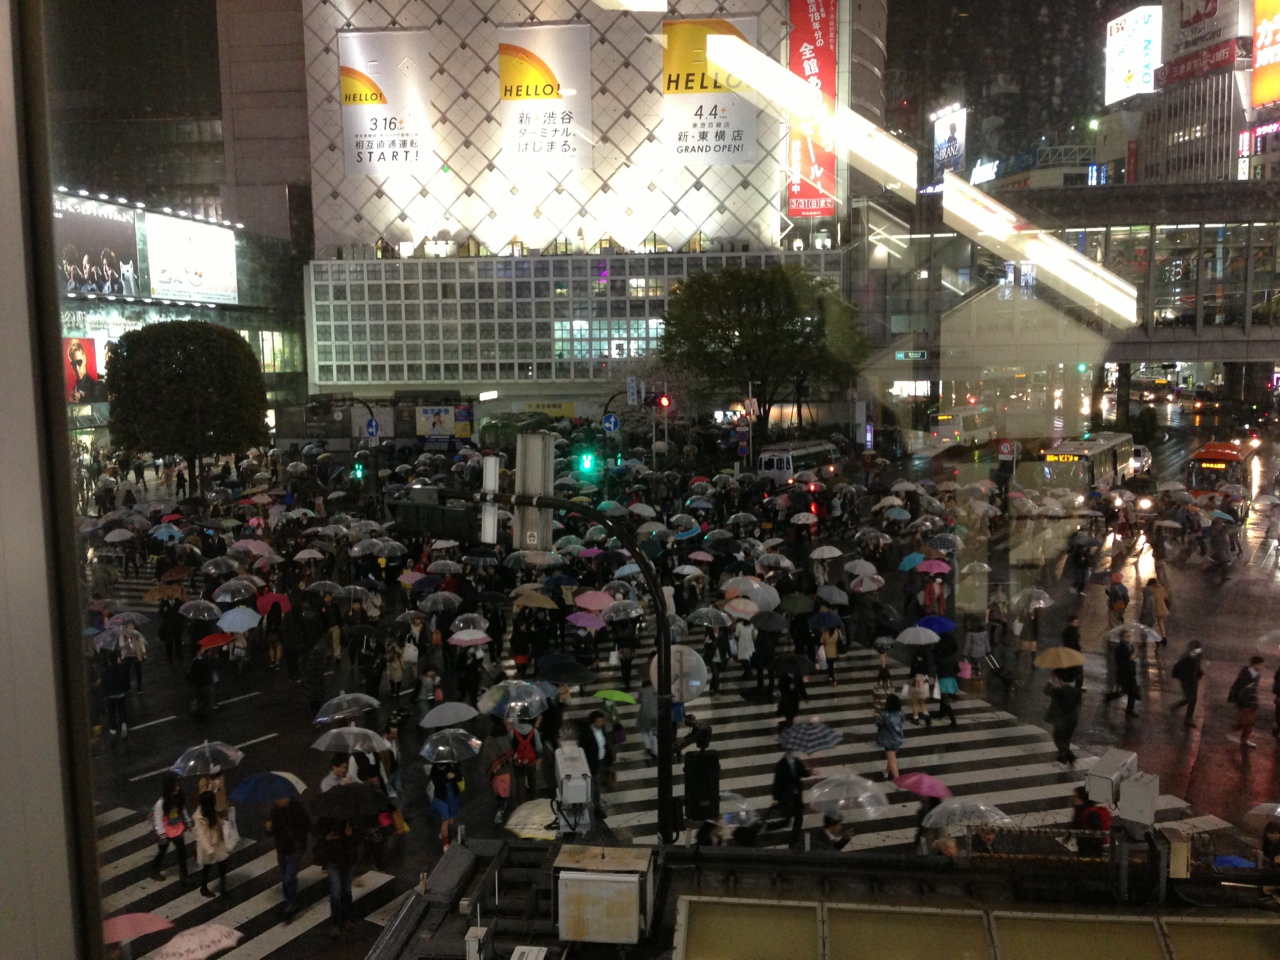 Shibuya crossing on a rainy day.